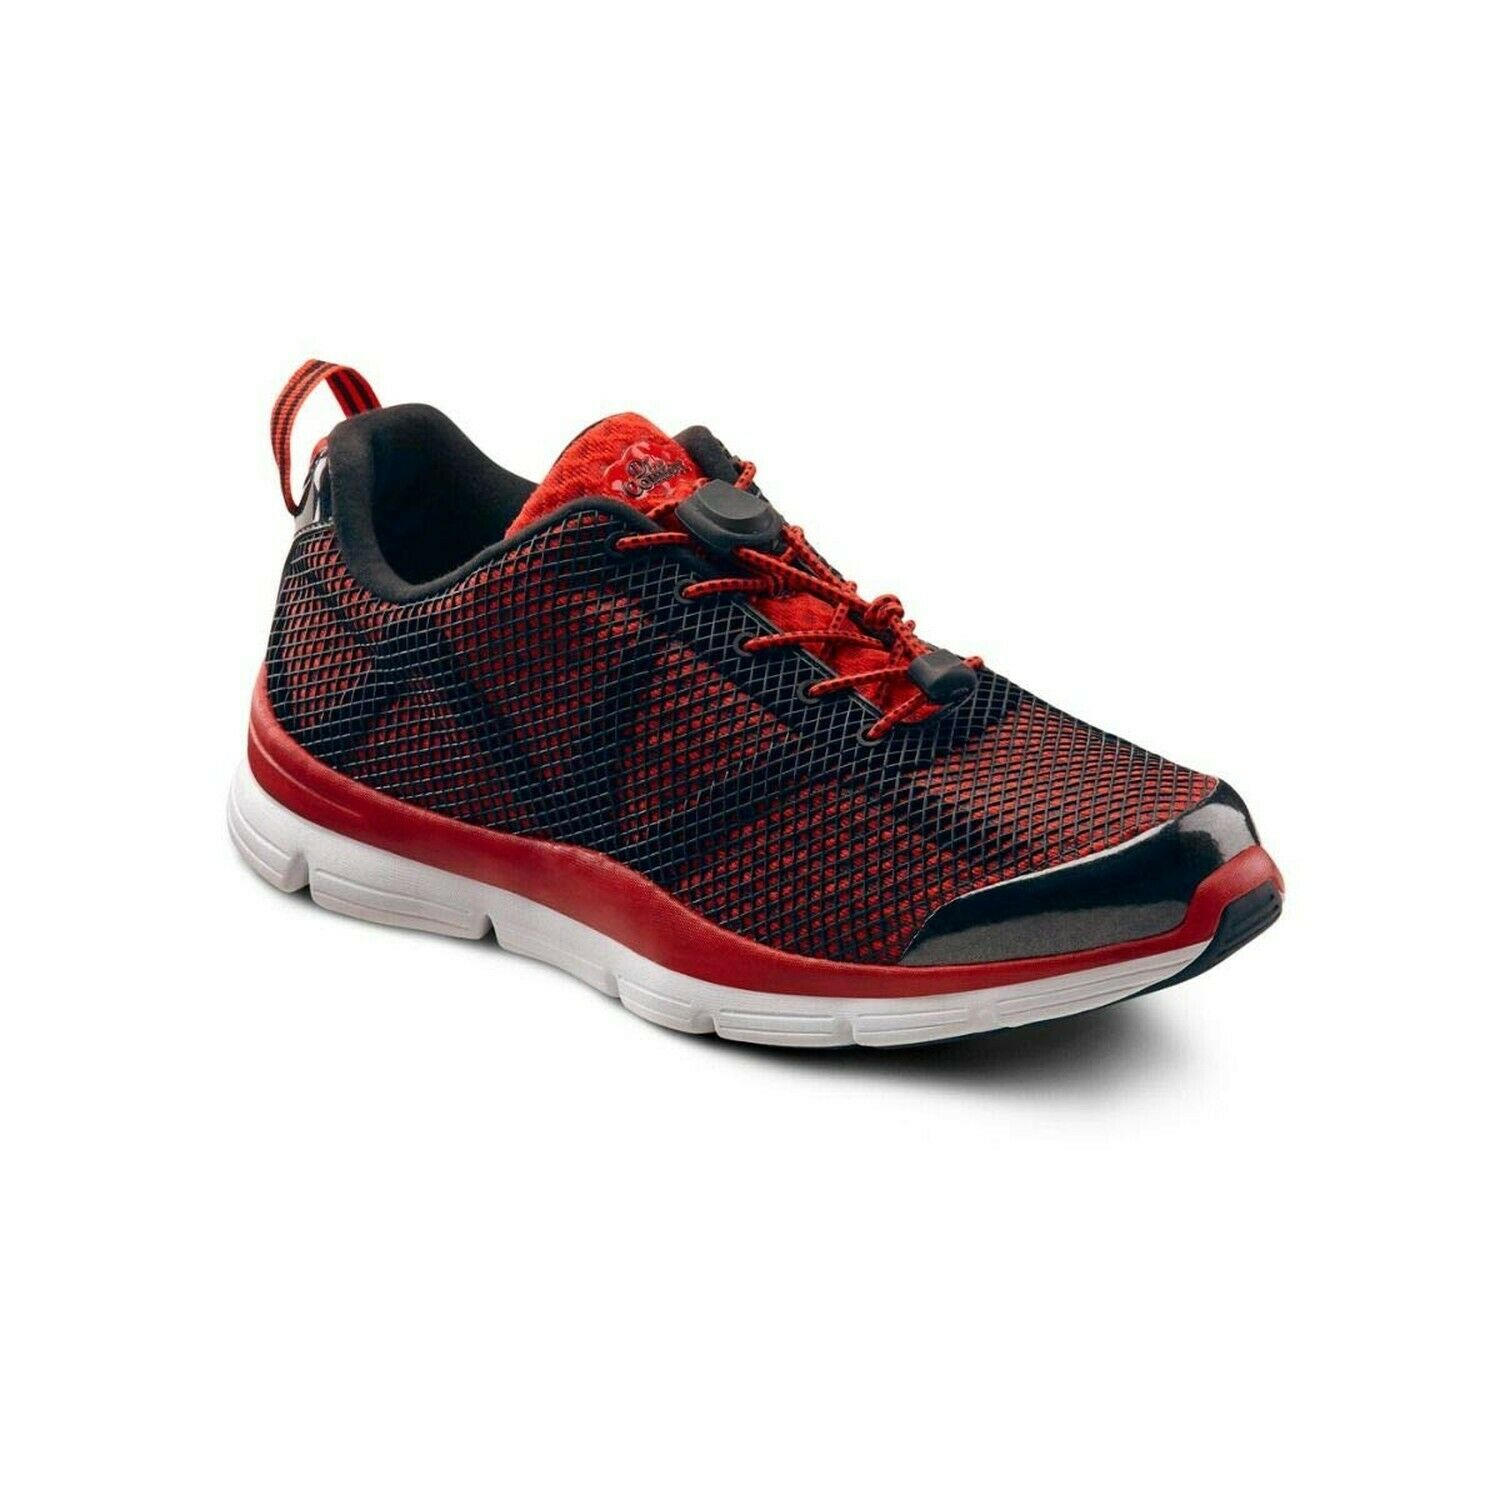 Dr. Comfort Jason Men's Therapeutic Extra Depth Athletic shoes  Red 9.5 X-Wide...